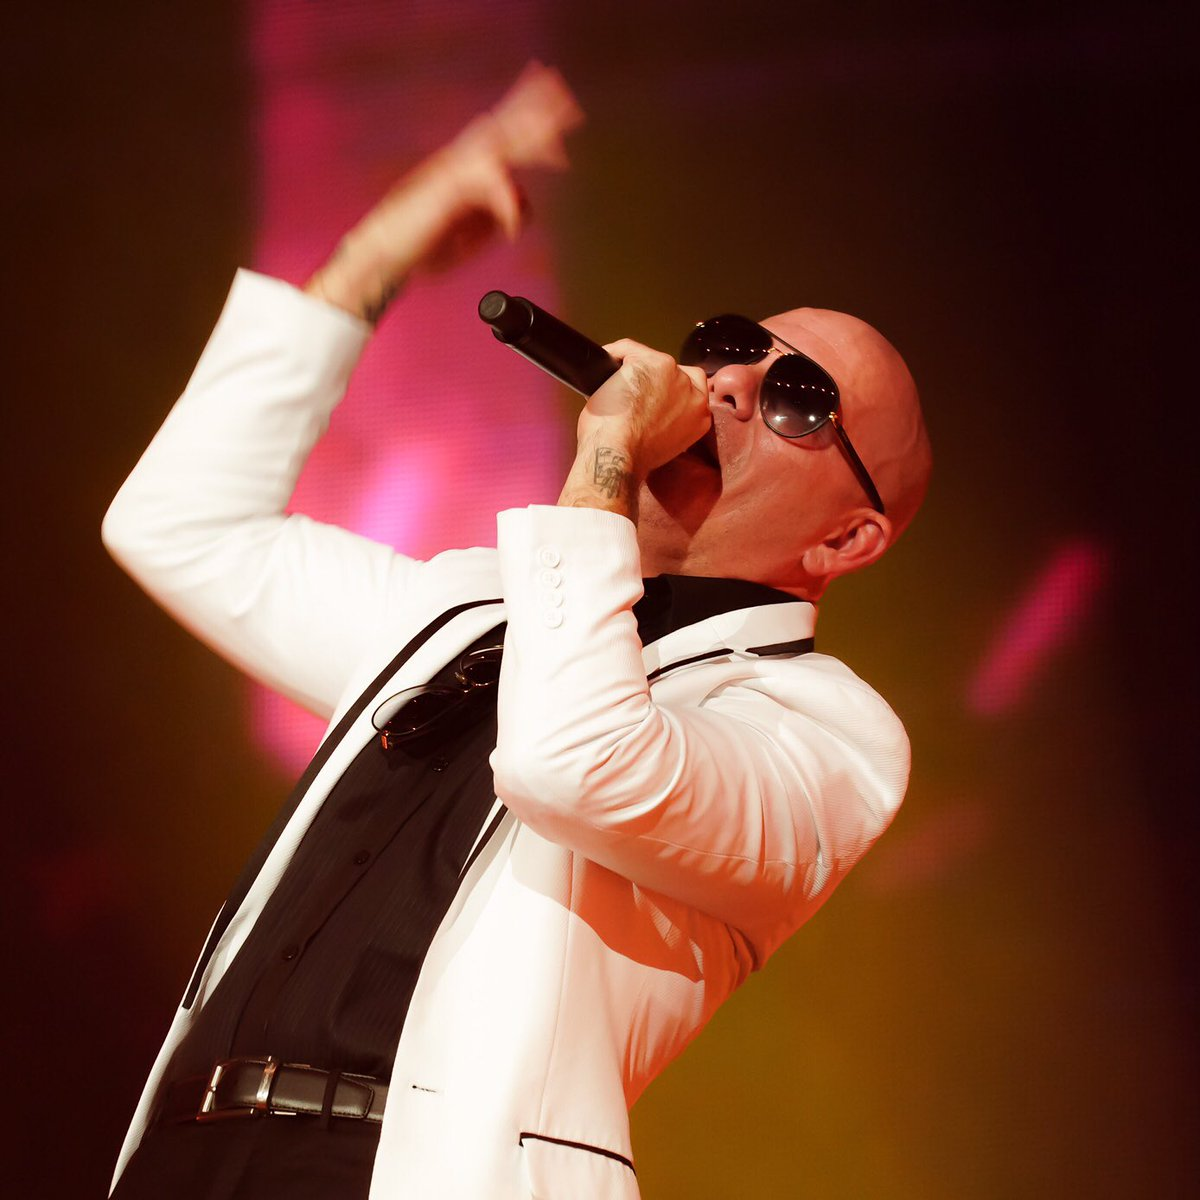 party in Phoenix #TalkingStickResortArena tonight with @princeroyce @FarrukoPR @livenation #dale https://t.co/BHw2gbVa47